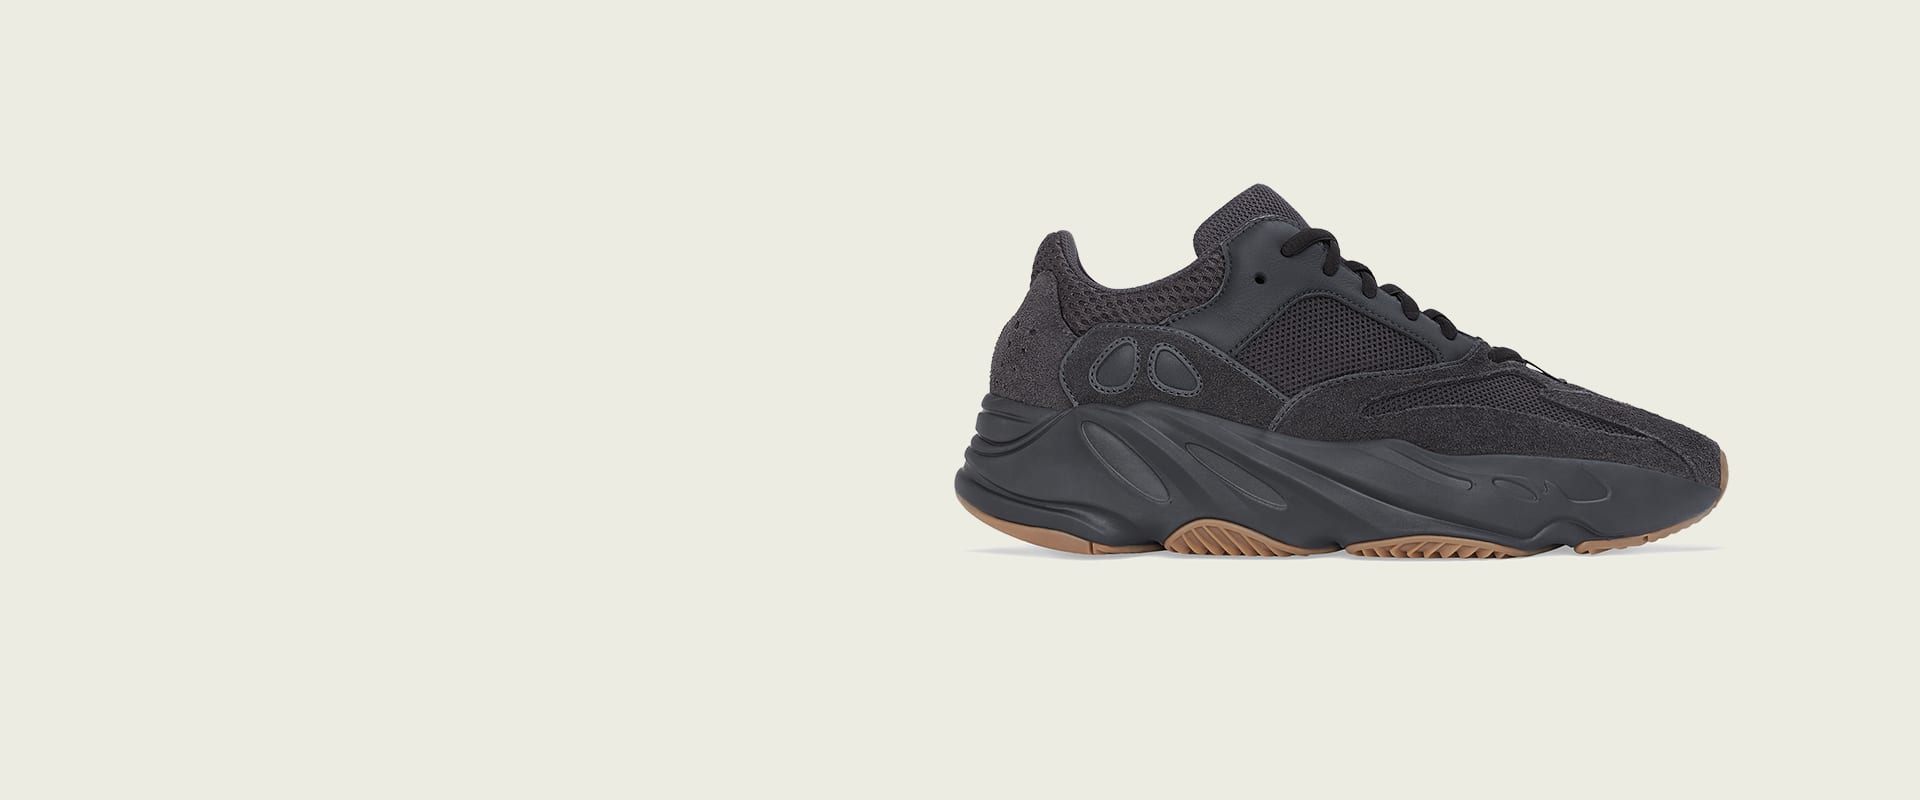 differently 8d917 7ebbe YEEZY BOOST 700 UTILITY BLACK